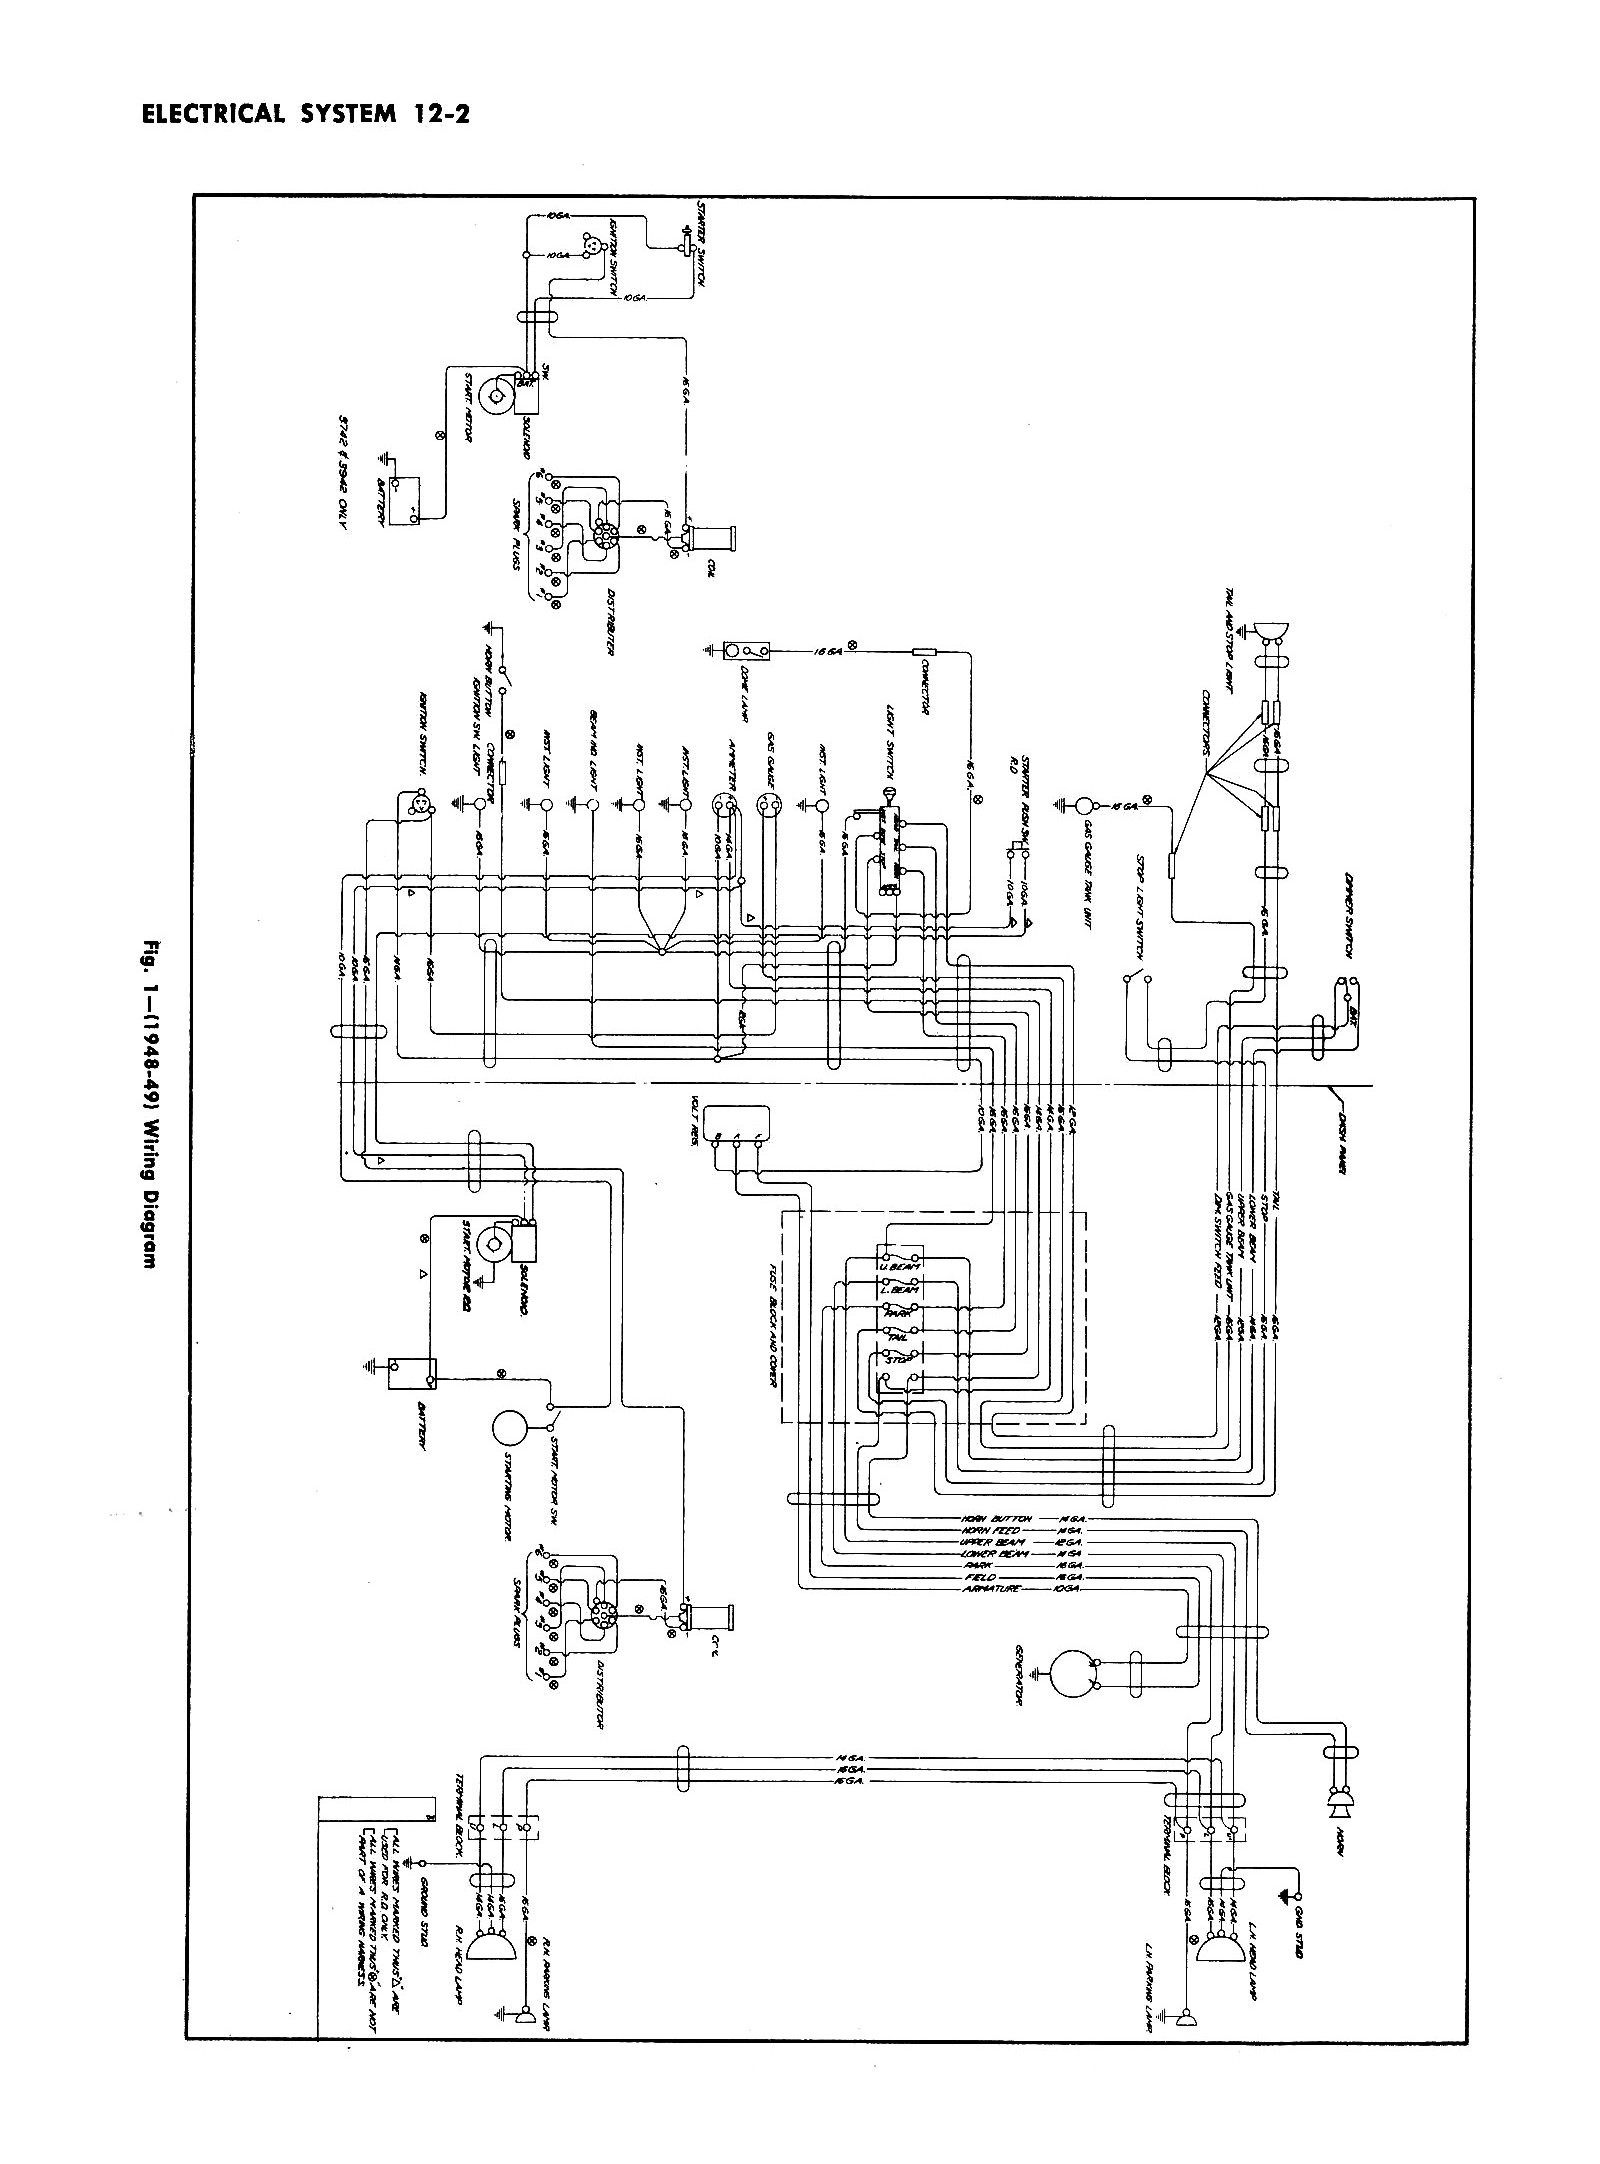 48car chevy wiring diagrams 1955 Chevy Headlight Wiring Diagram at reclaimingppi.co